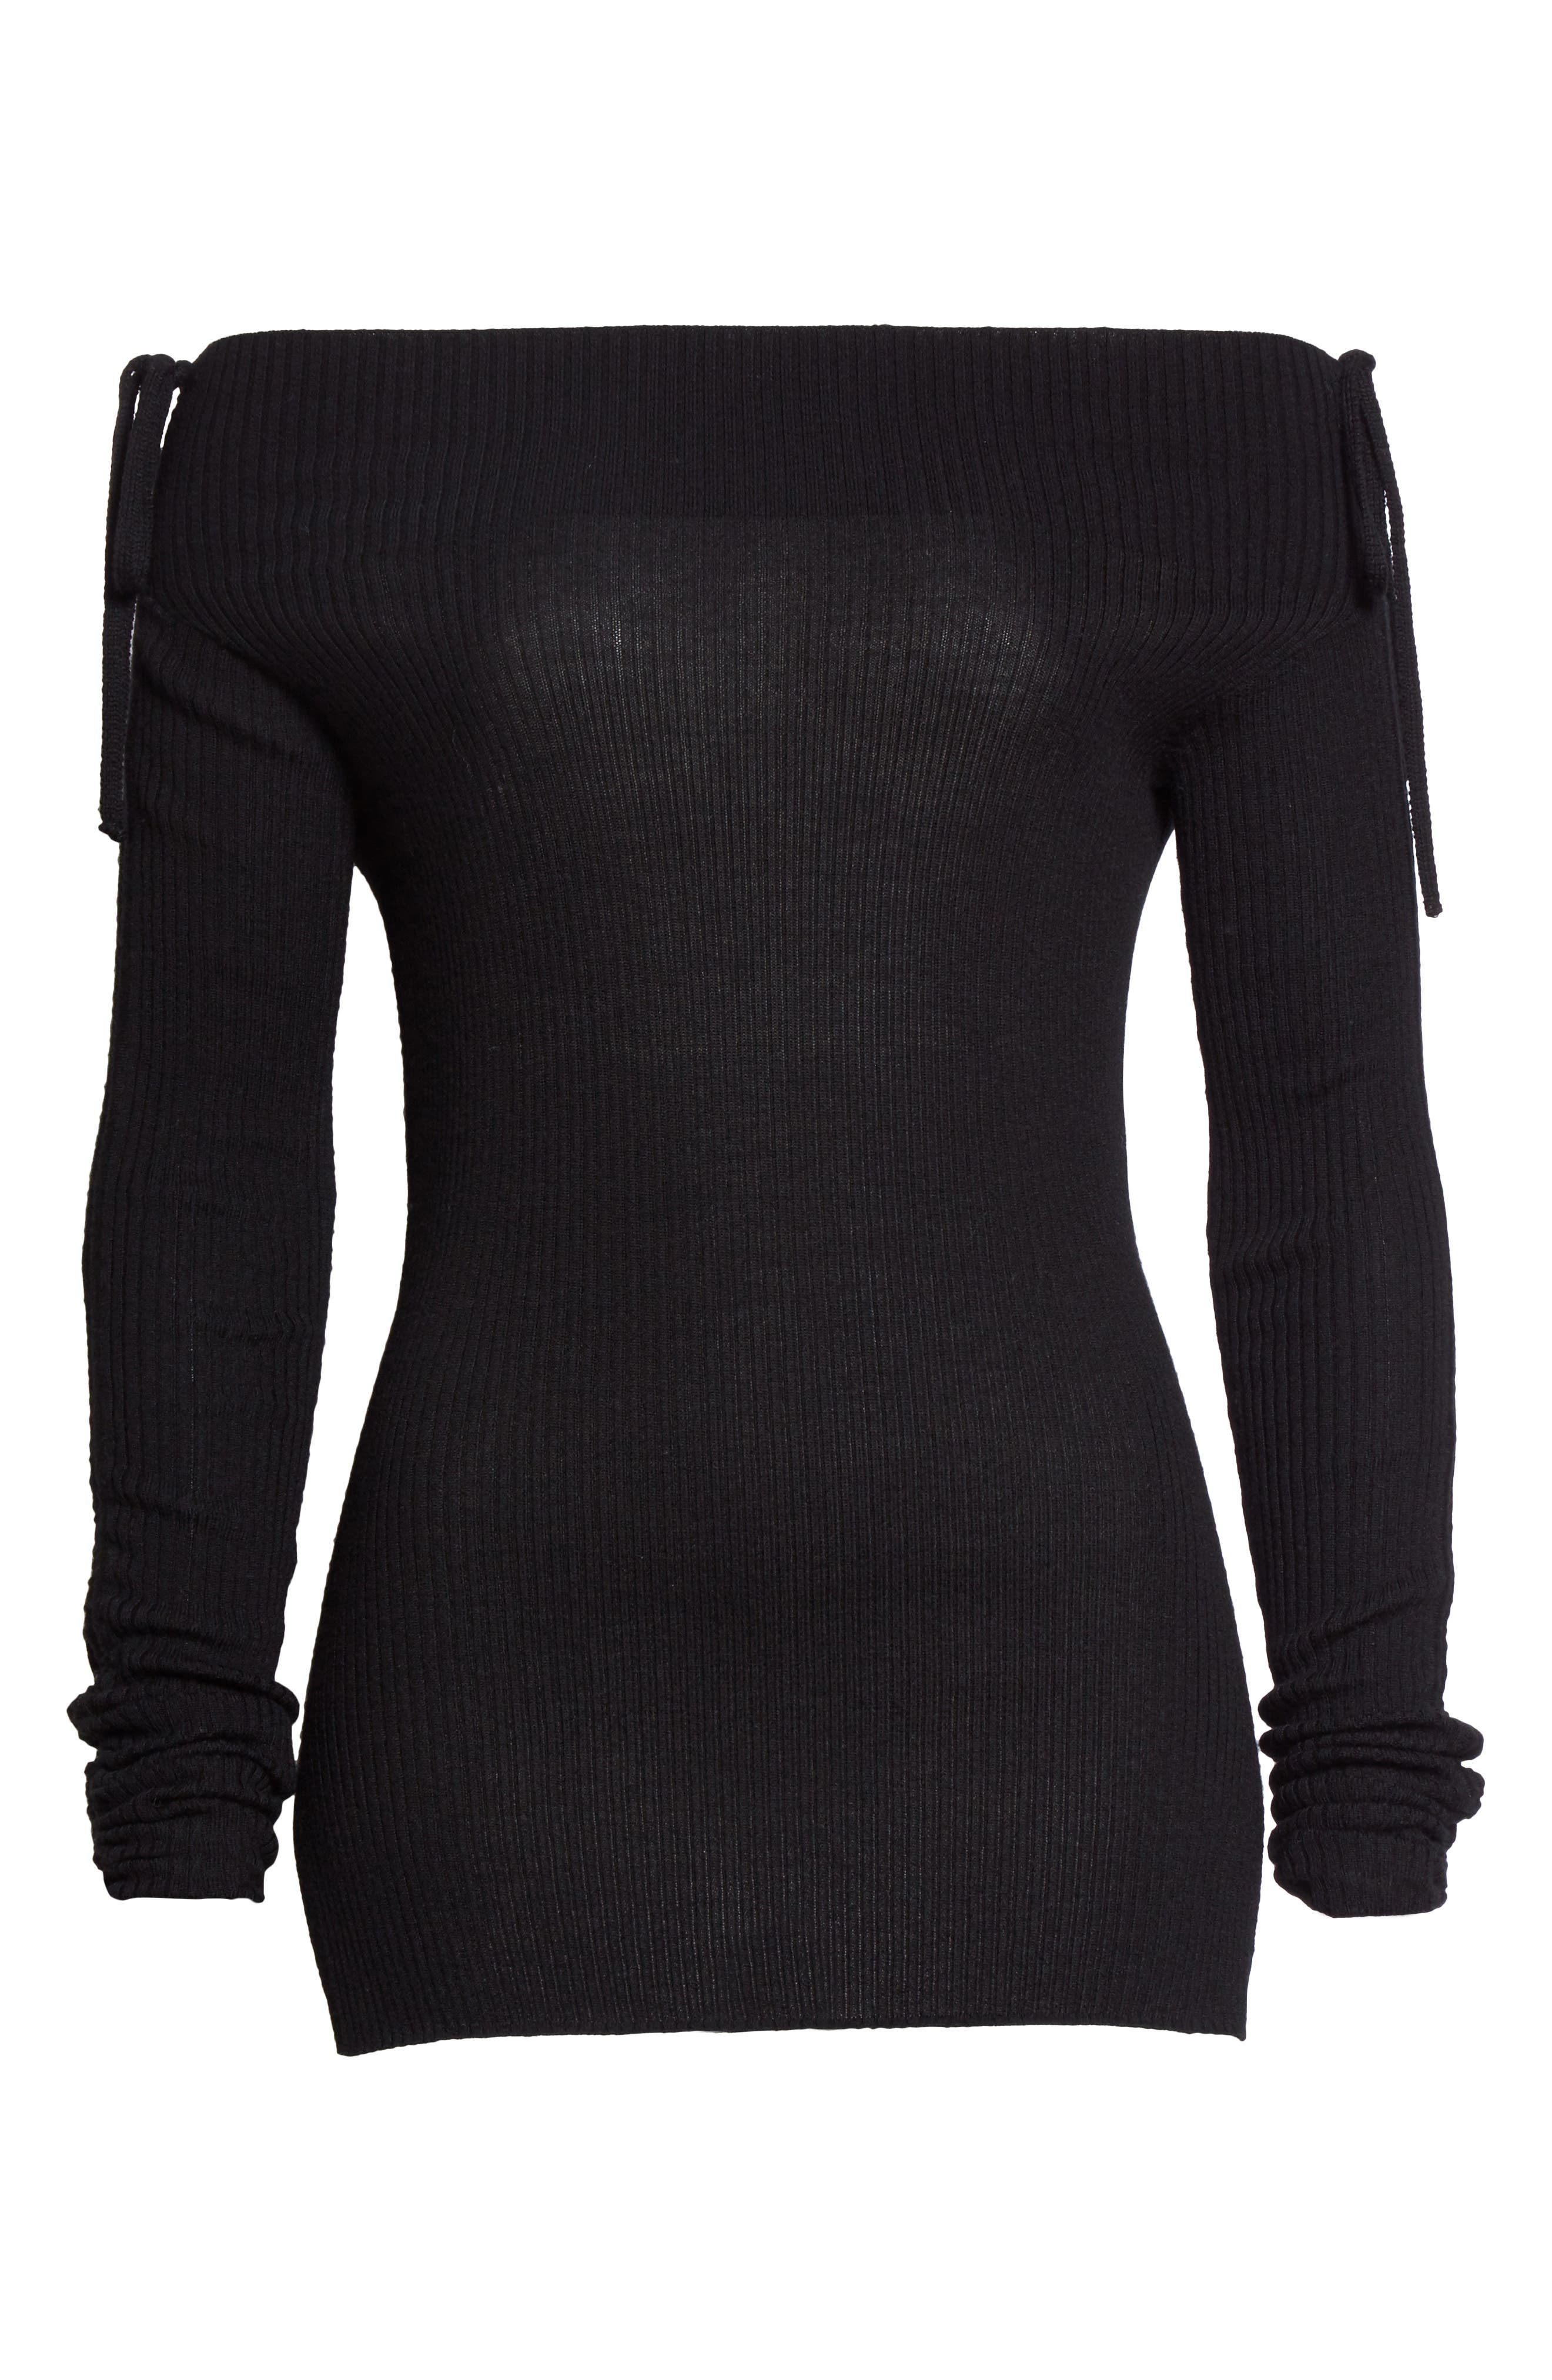 Merino Wool Off the Shoulder Sweater,                             Alternate thumbnail 6, color,                             001